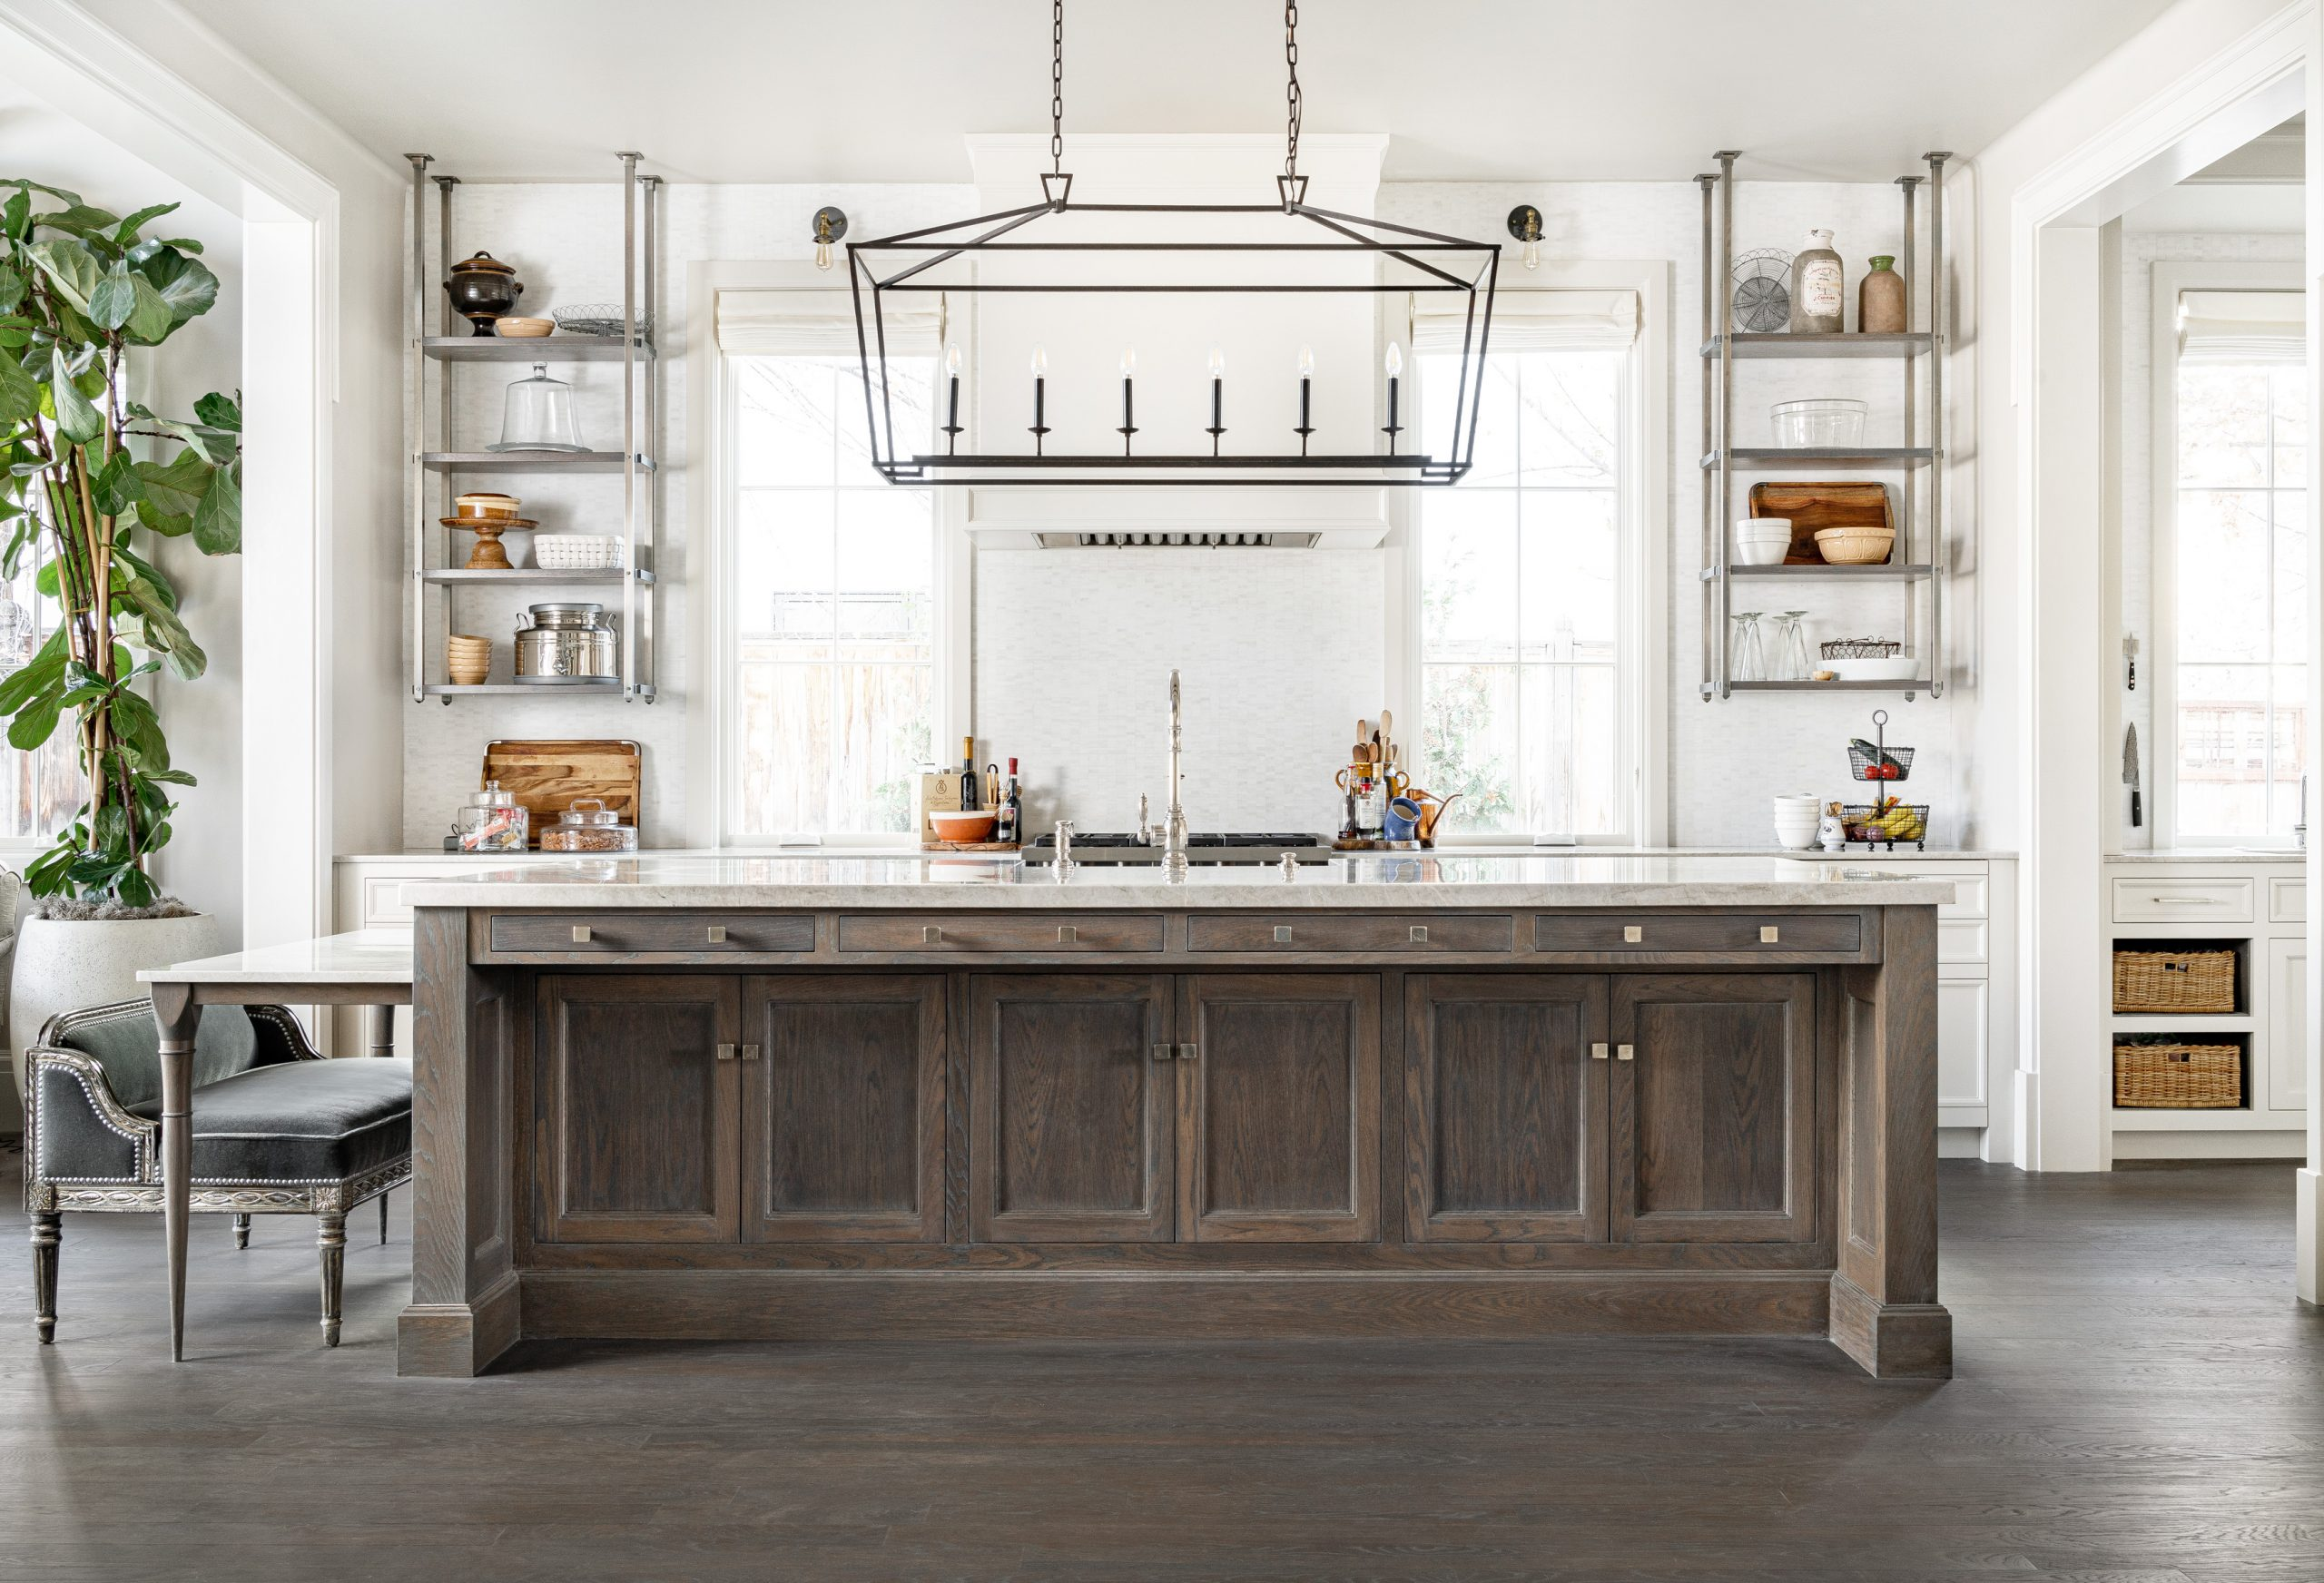 How does a kitchen that combines traditional farmhouse with modern industrial with a touch of Victorian look as seamlessly put together as this one? Christopher Scott Cabinetry and Design is how. We're meticulous about the details, because we know that's where we can make everything you're dreaming about coming together in one perfectly cohesive space.